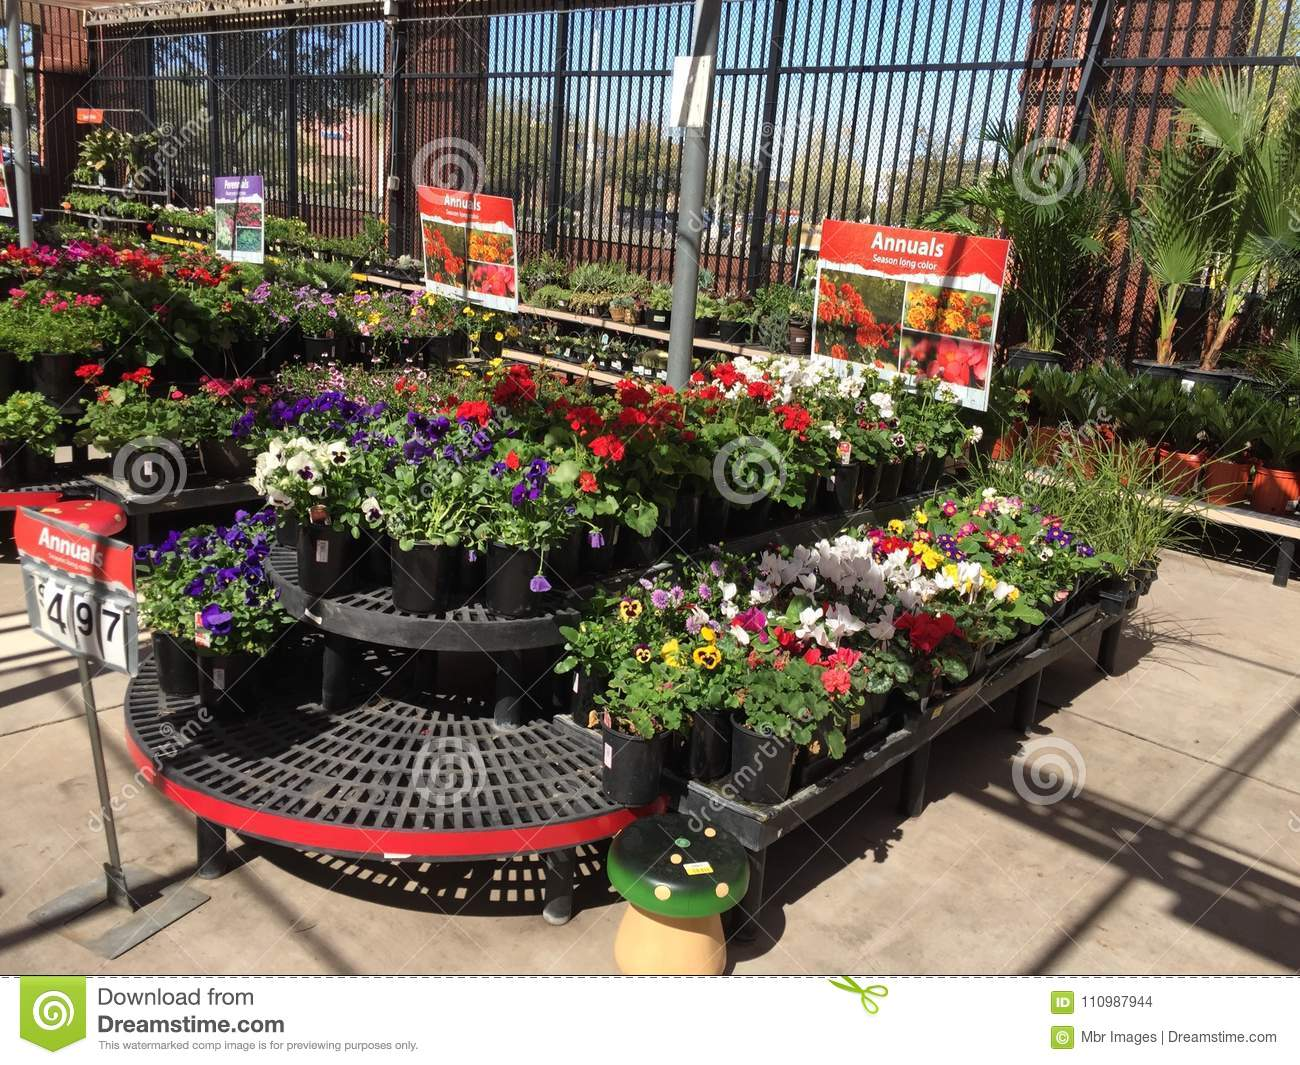 plants for sale in nursery editorial stock image. image of sale